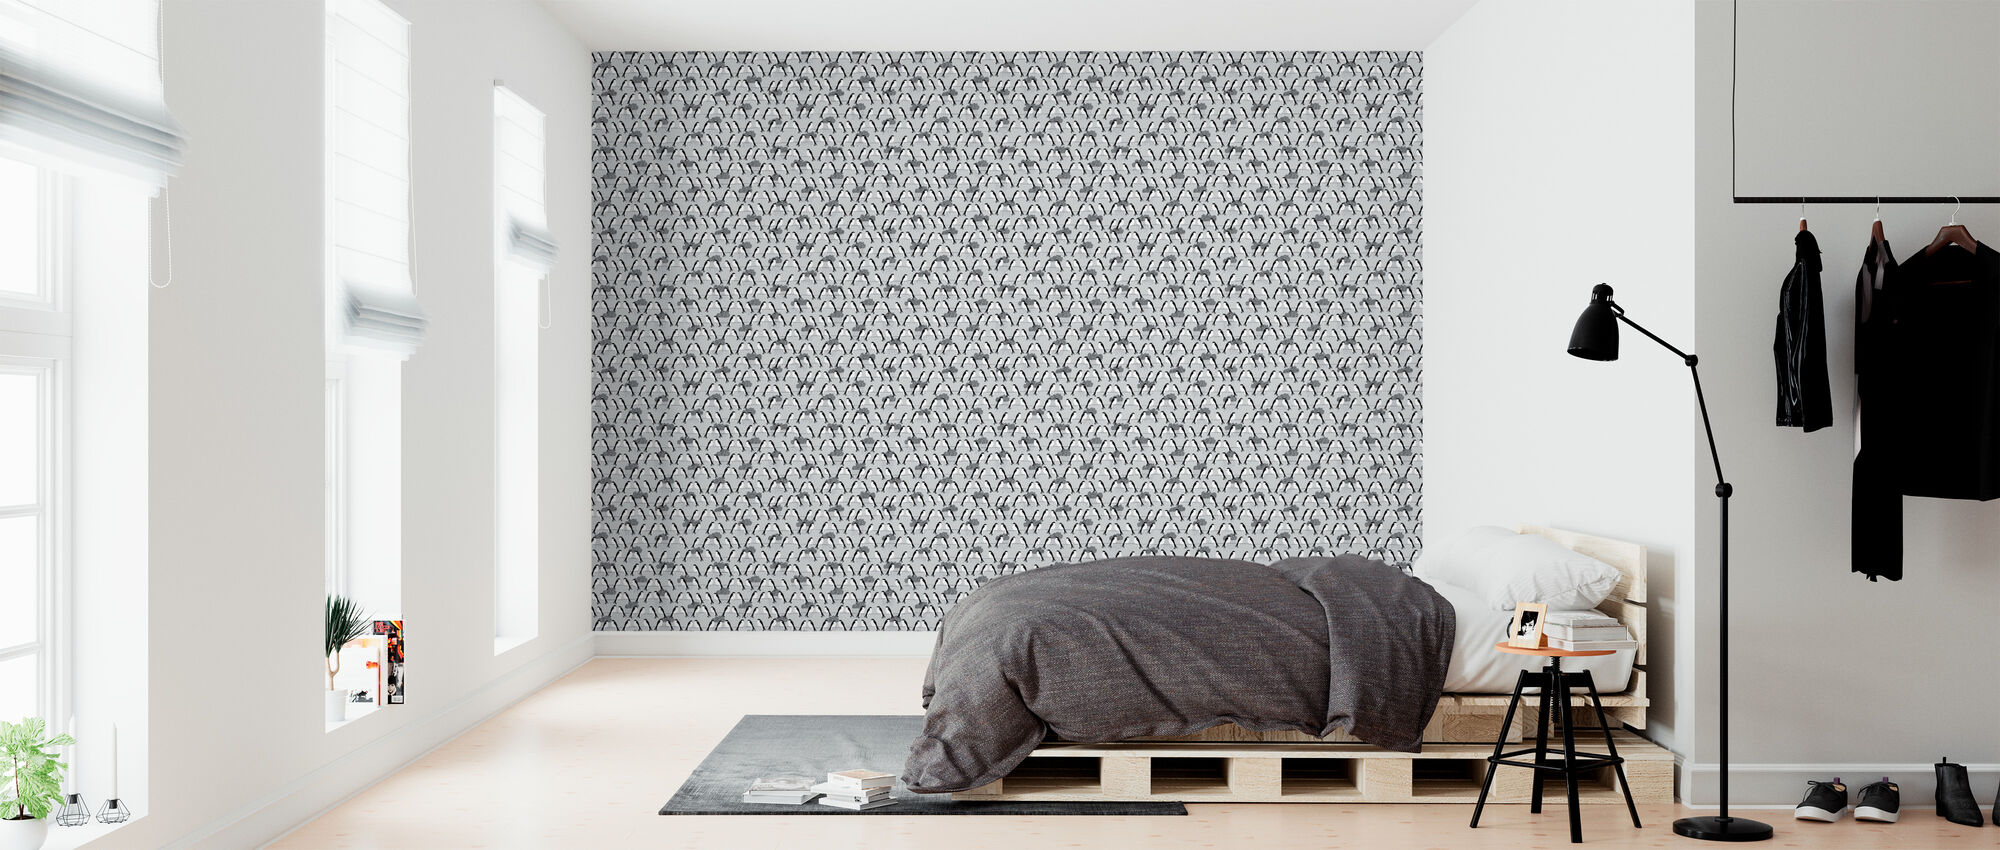 Waiting for a call - Wallpaper - Bedroom